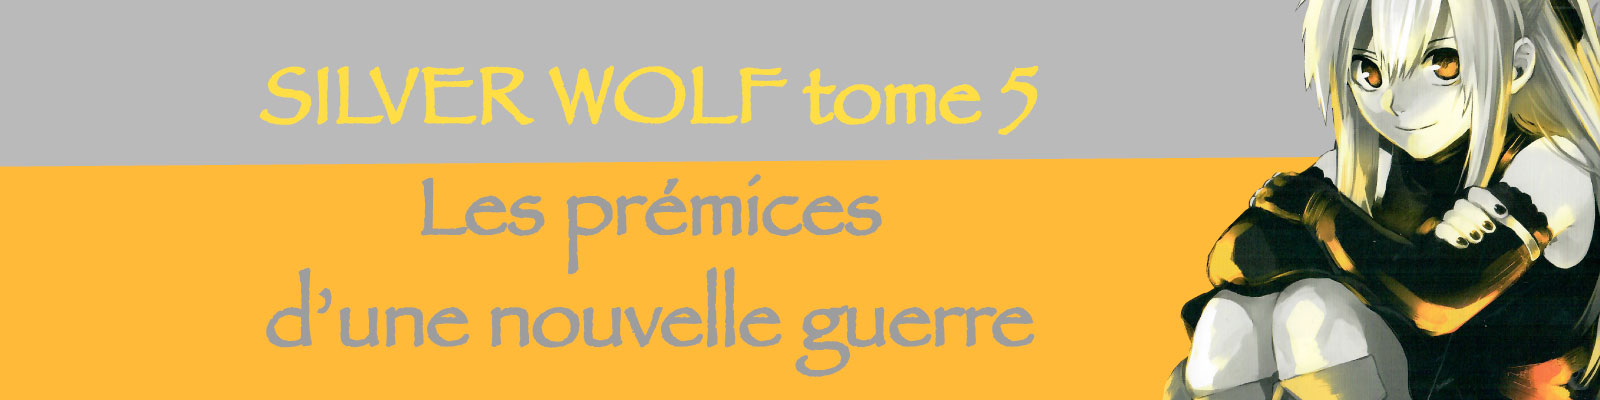 Silver Wolf tome 5